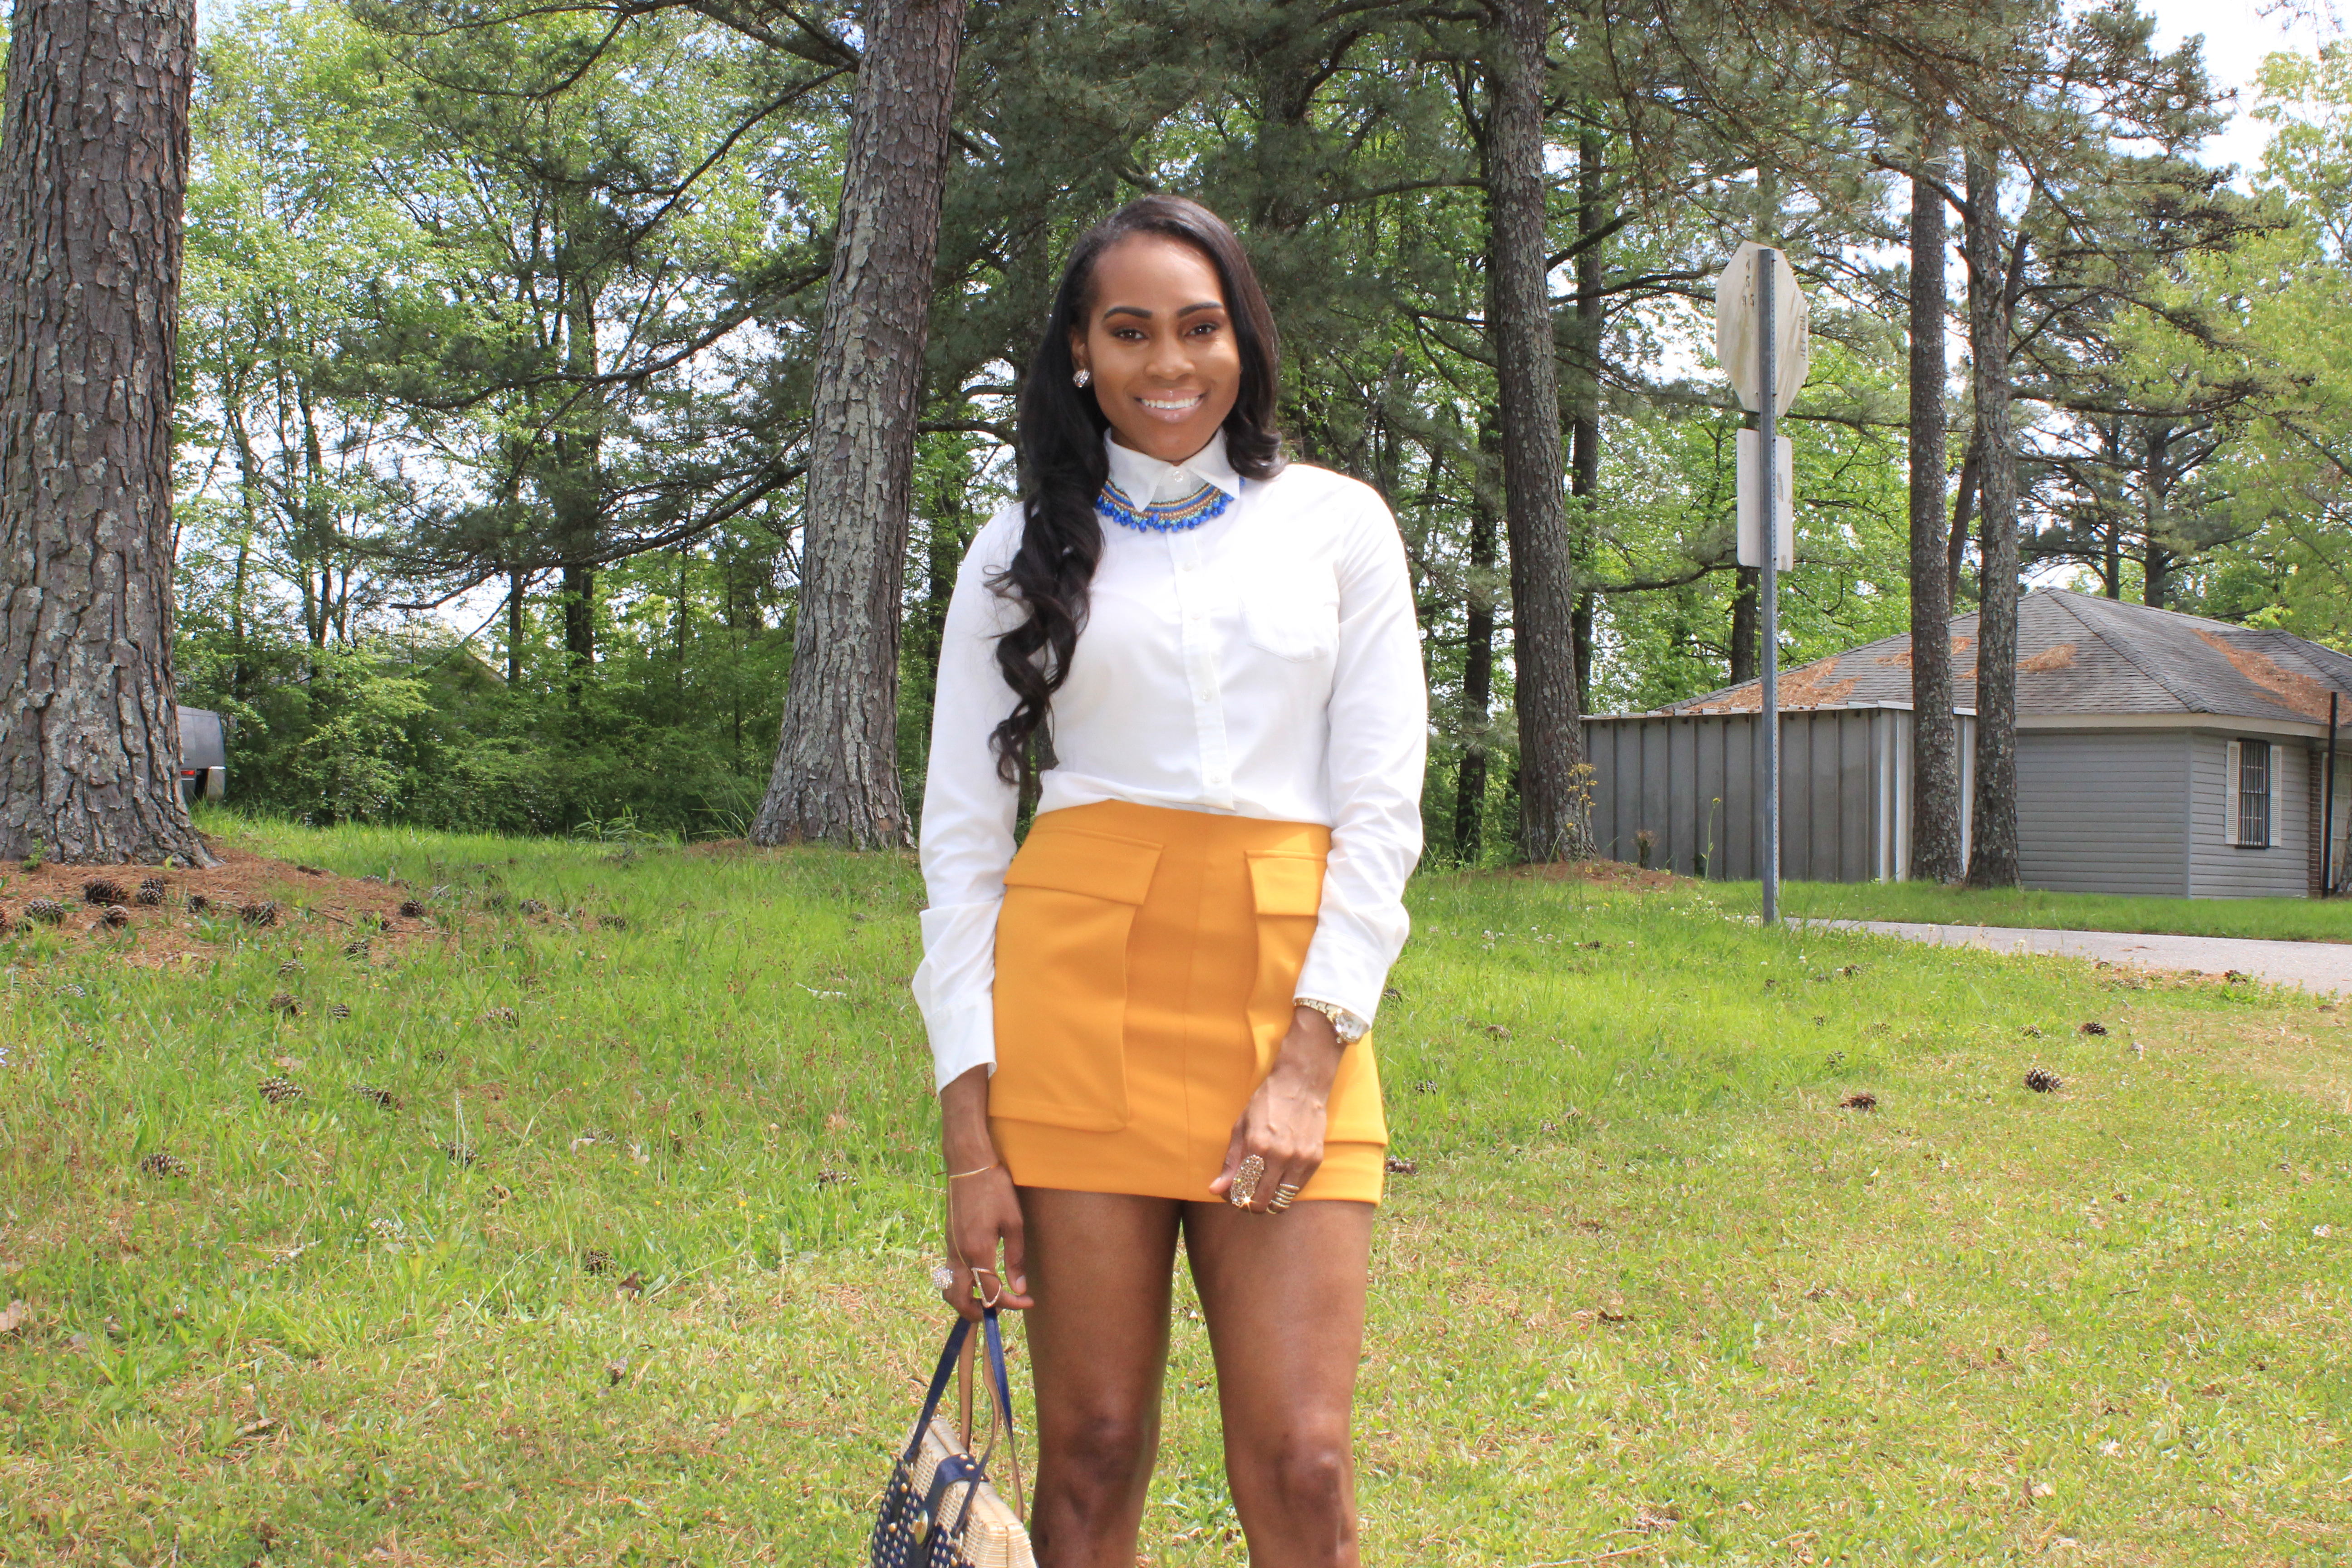 Style-Files-Forever21-Mustard-Yellow-Flap Pockets-Mini-Skirt-Yellow-Mini-Skirt-Target-Merona-White-Blouse-Mossimo-Ankle-Strap-Tan-Nude-Patent-Leather-sandals-oohlalablog-3